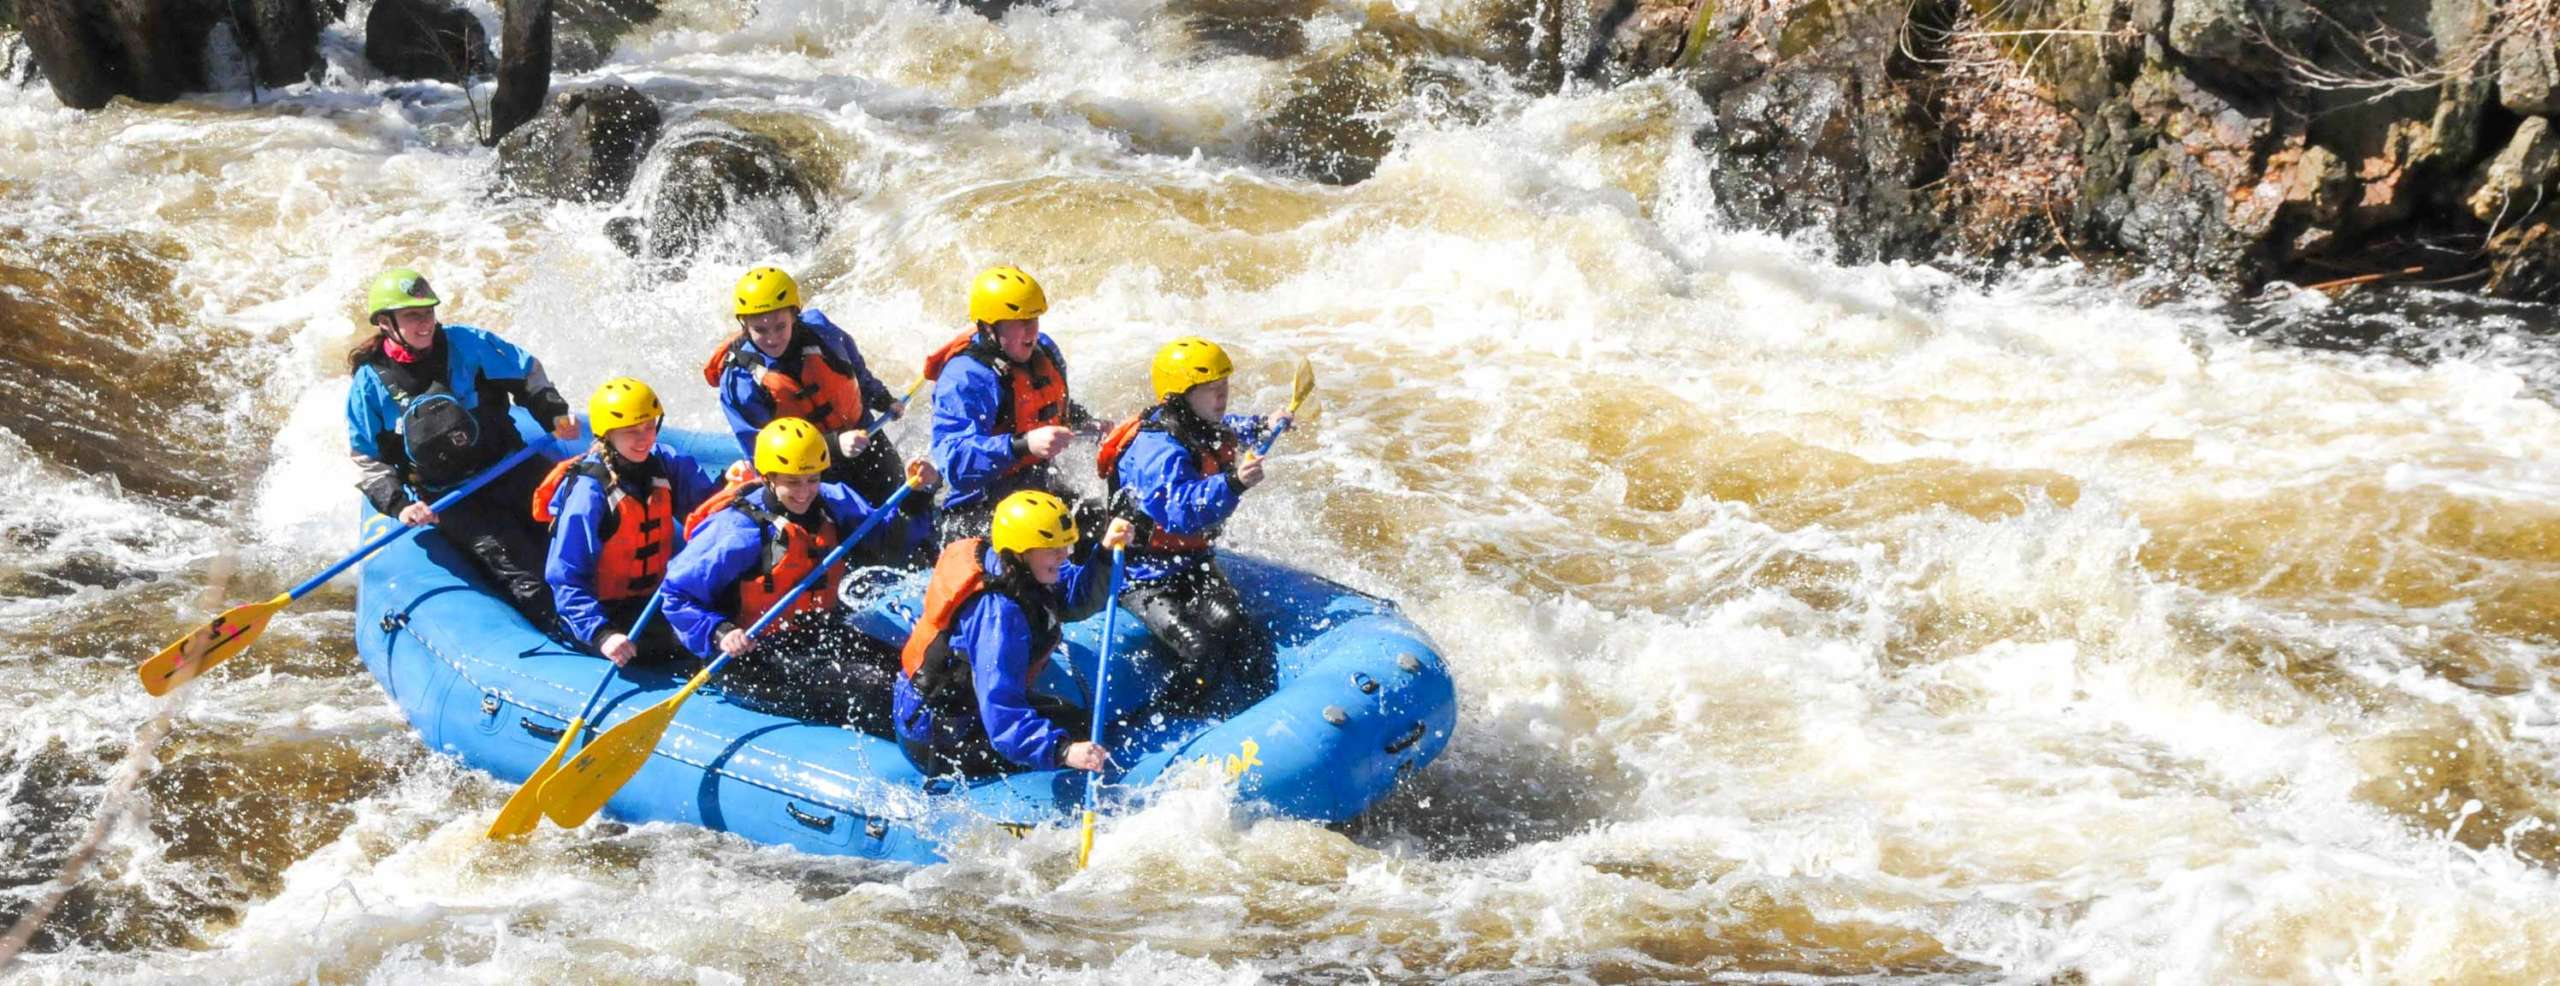 Group of people rafting through rapids